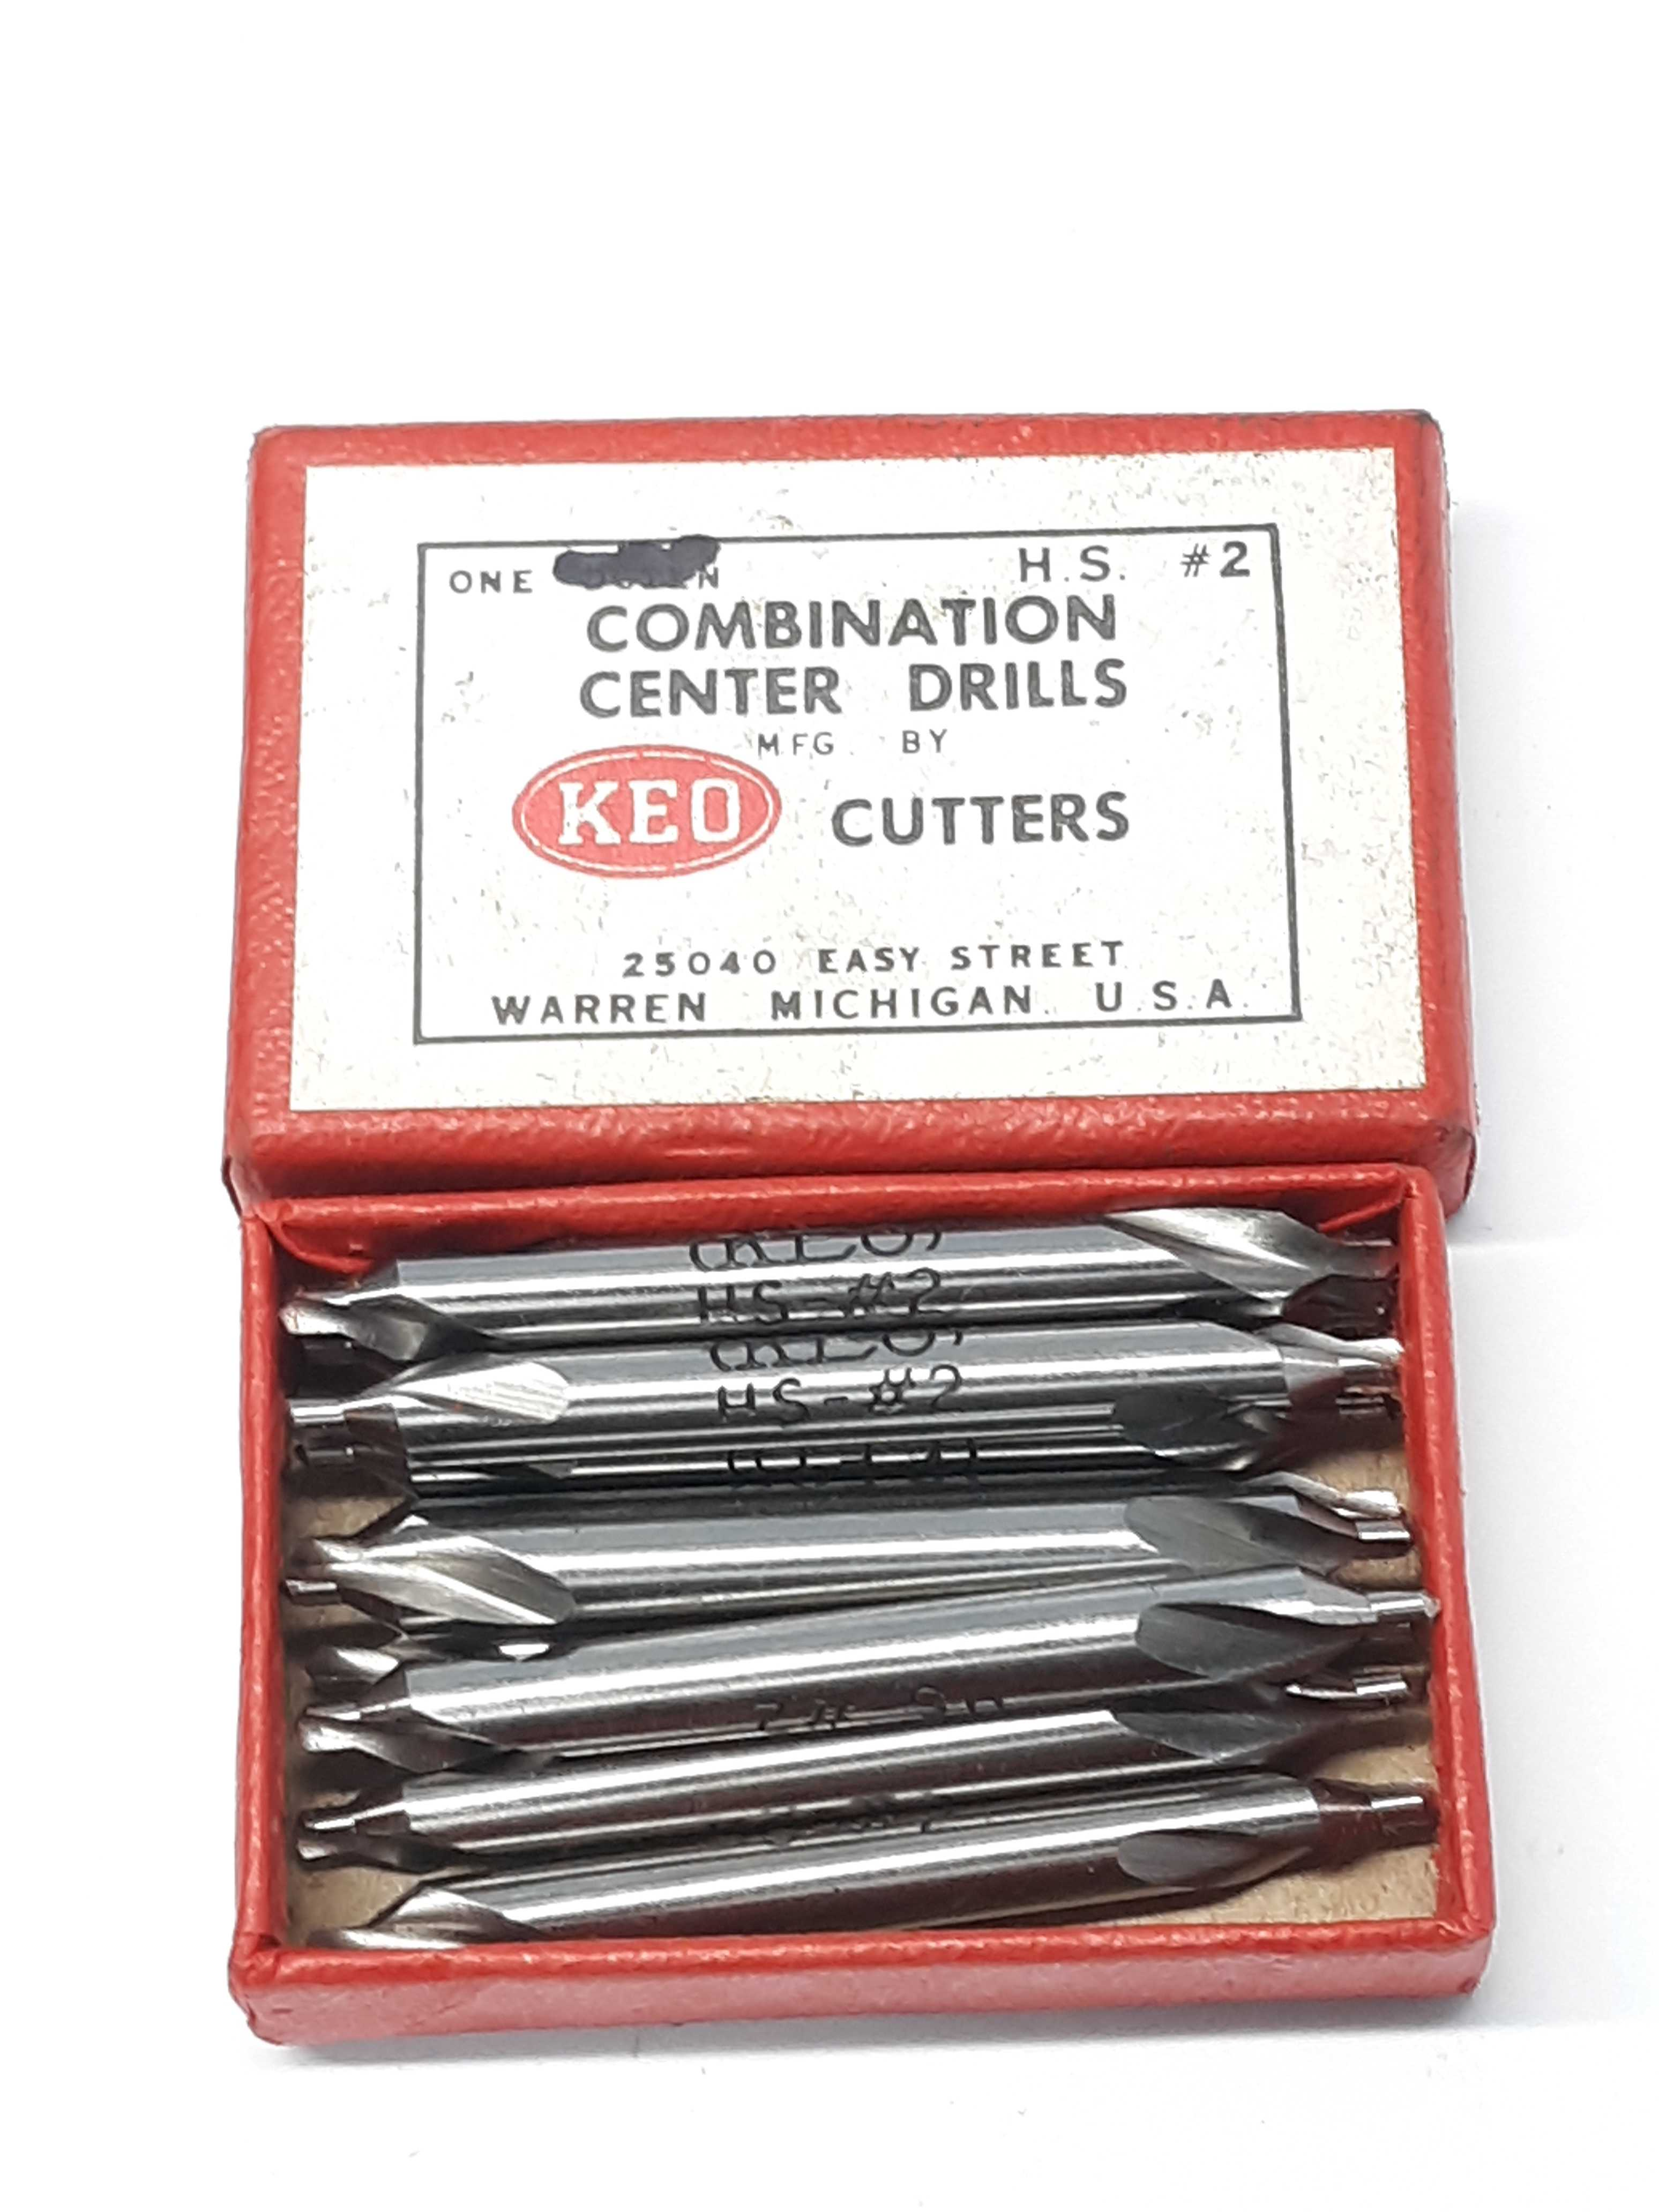 KEO HS-#2 Combination Center Drills Lot of 10